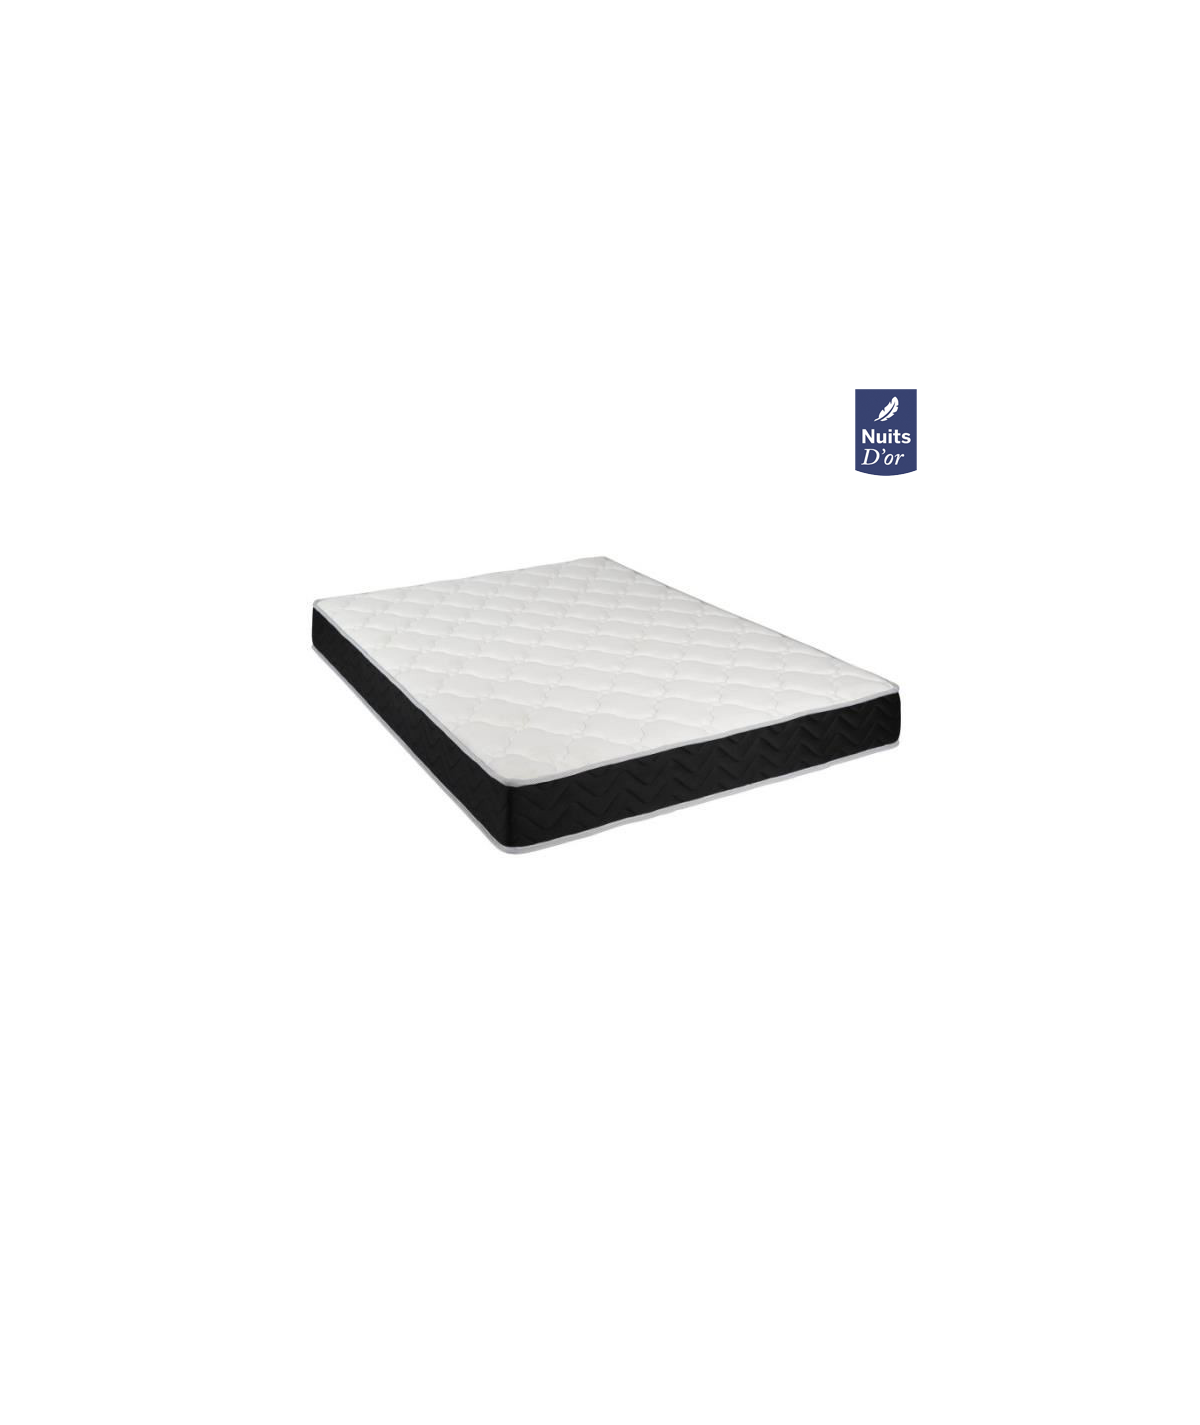 Dream Night Mattress 70x190 Latex + Aertech - Height 20 Cm - Firm Support - Orthopedic